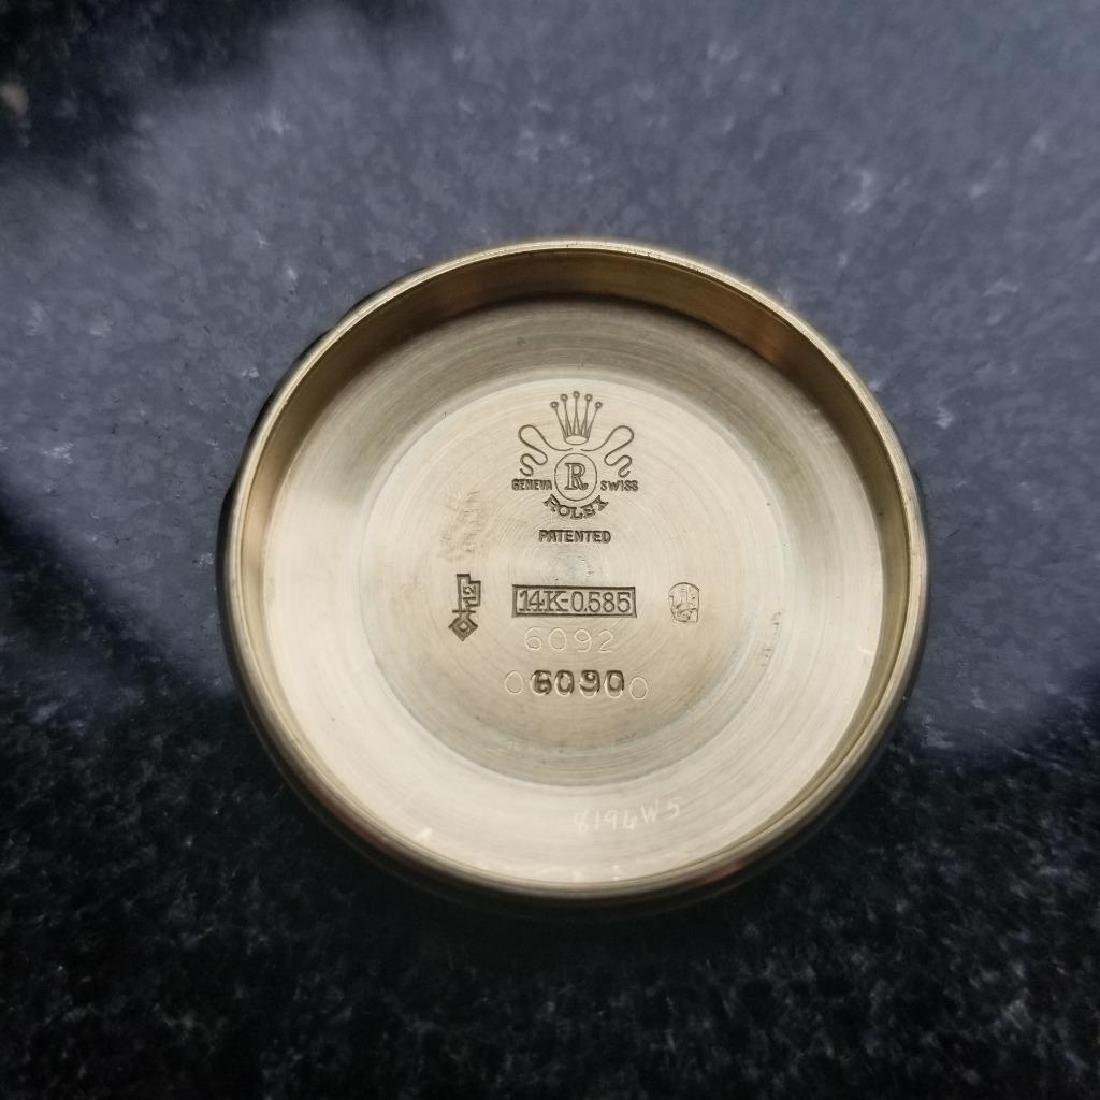 Rolex Oyster Perpetual Vintage 1951 14k Gold 6092 - 9